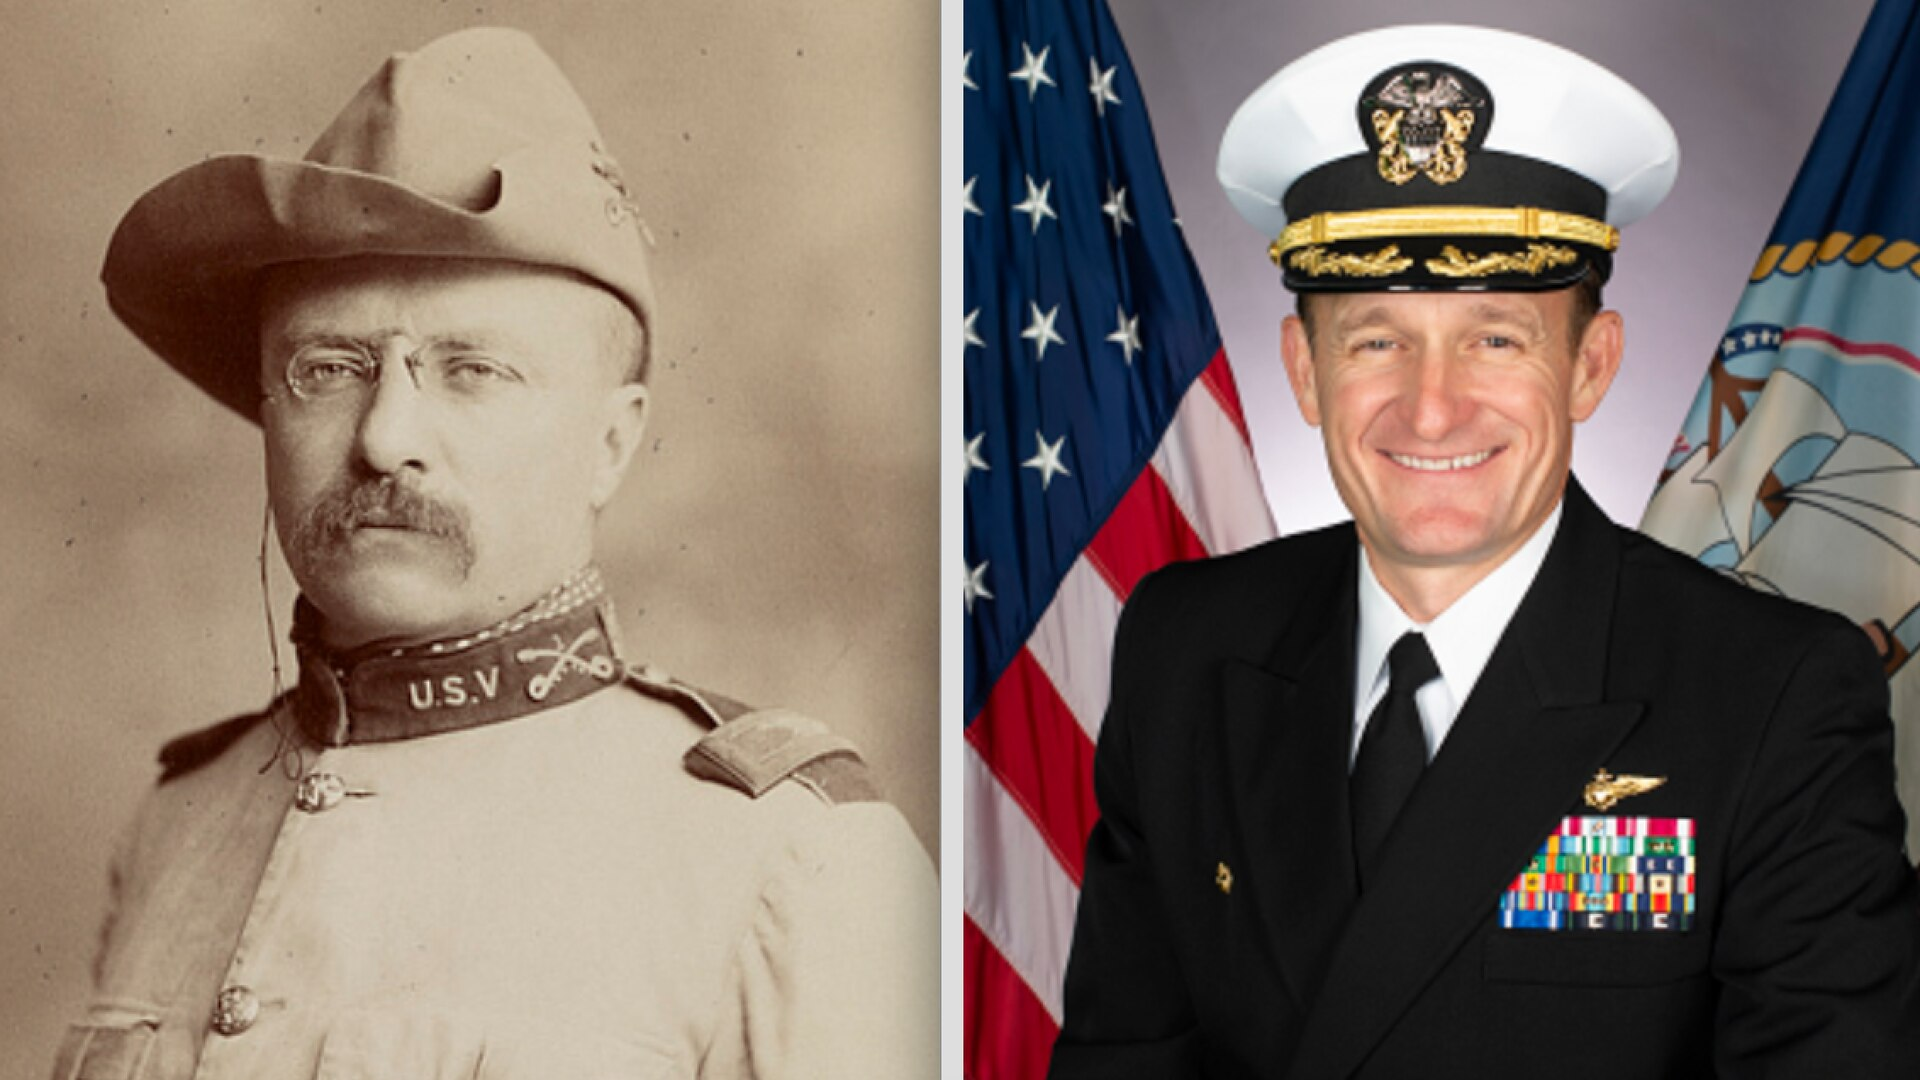 Action's by Capt. Crozier were remarkably similar to those taken by his ship's namesake 122 years earlier. (Library of Congress / Navy)